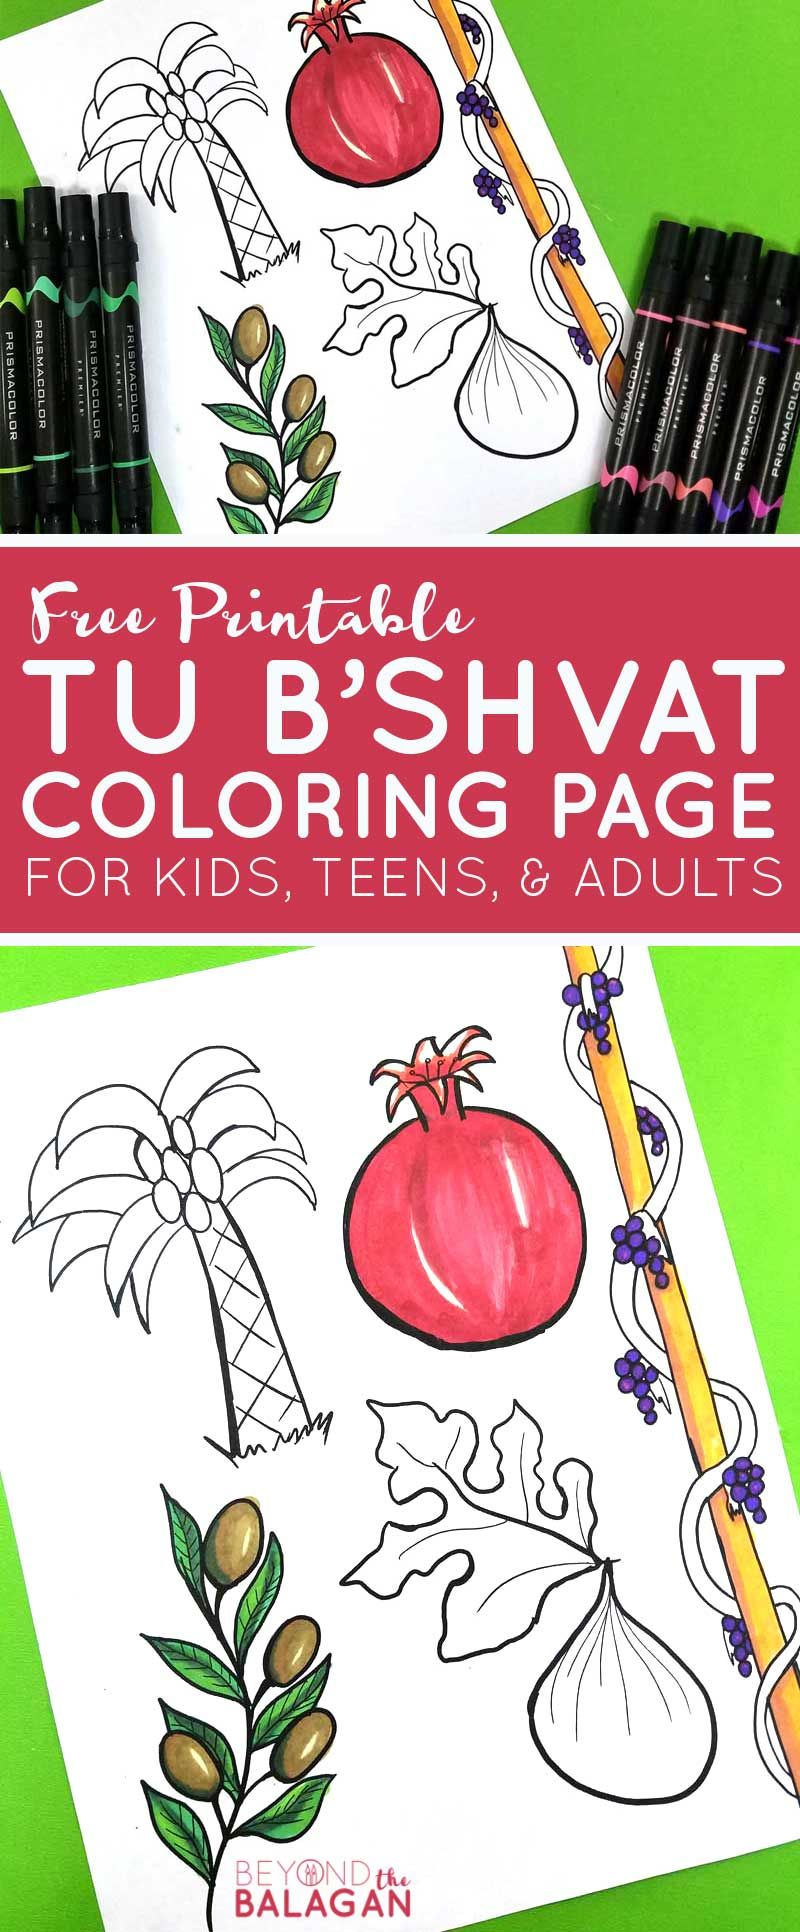 This Beautiful Fruit Coloring Page For Adults And Kids Features The Five That Israel Is